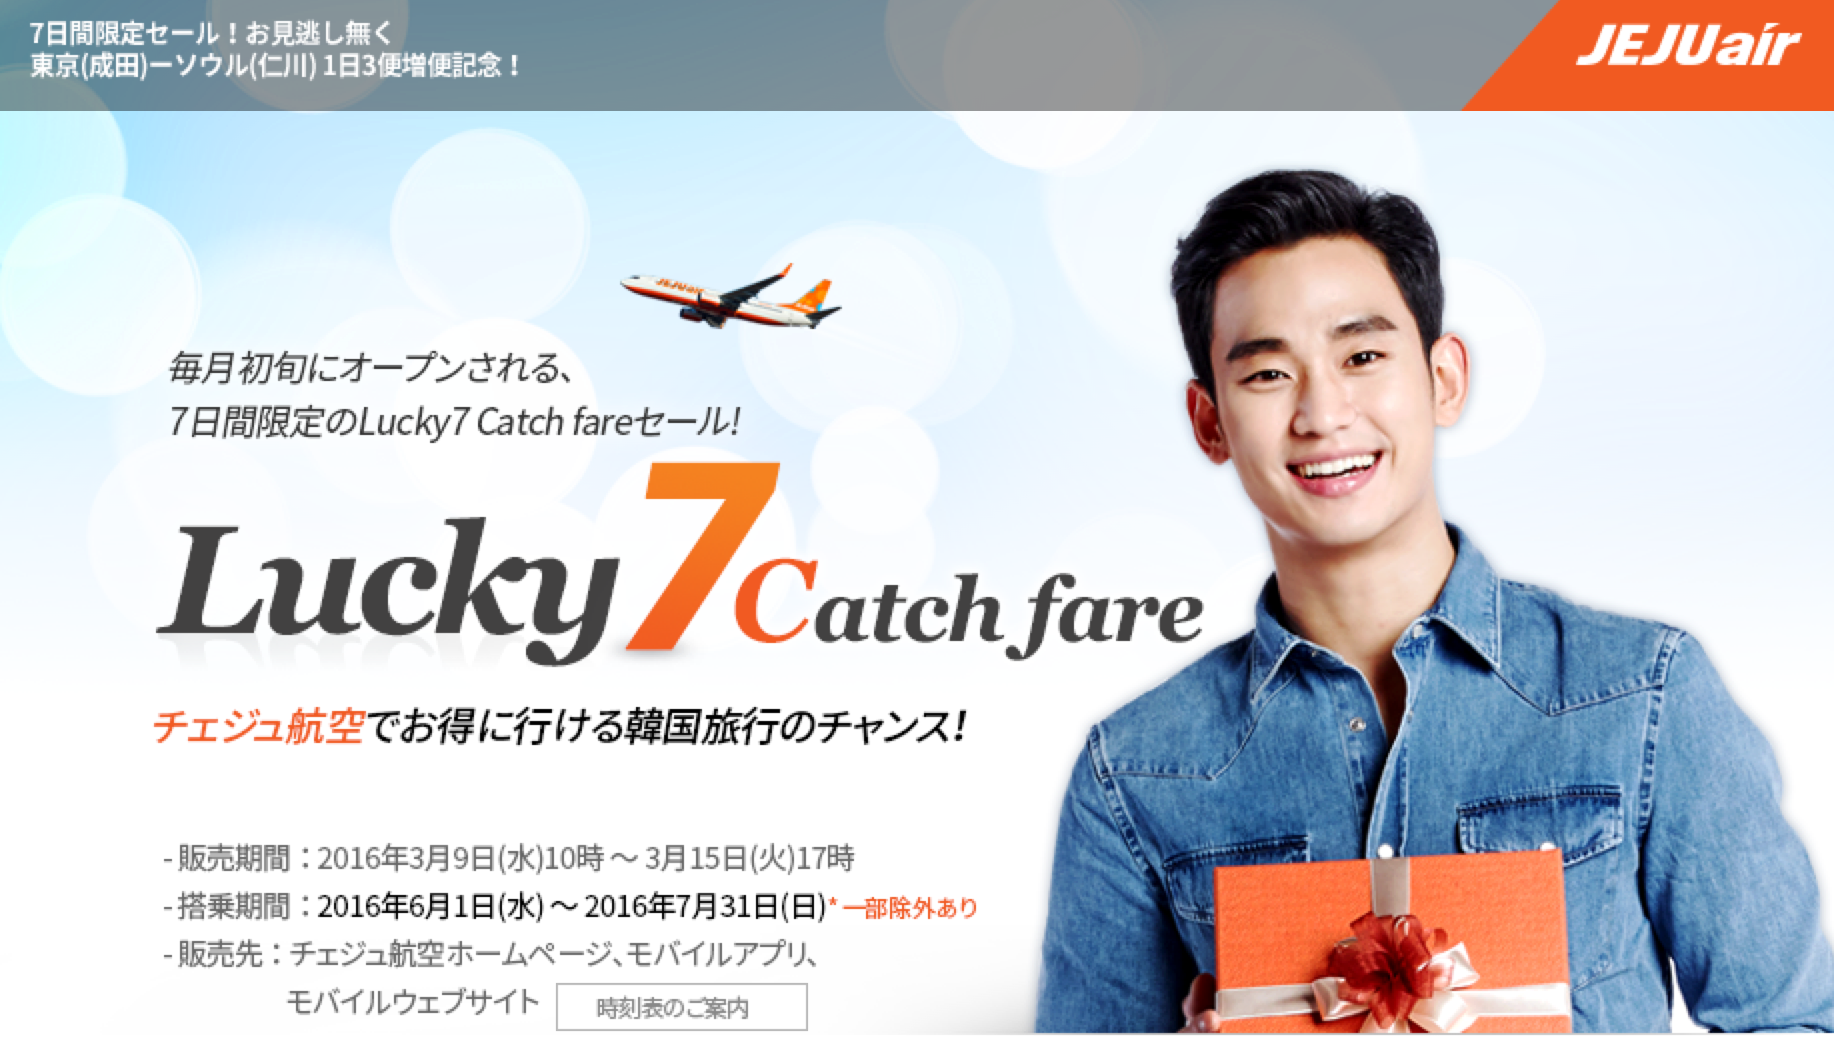 jejuairsale160309.png